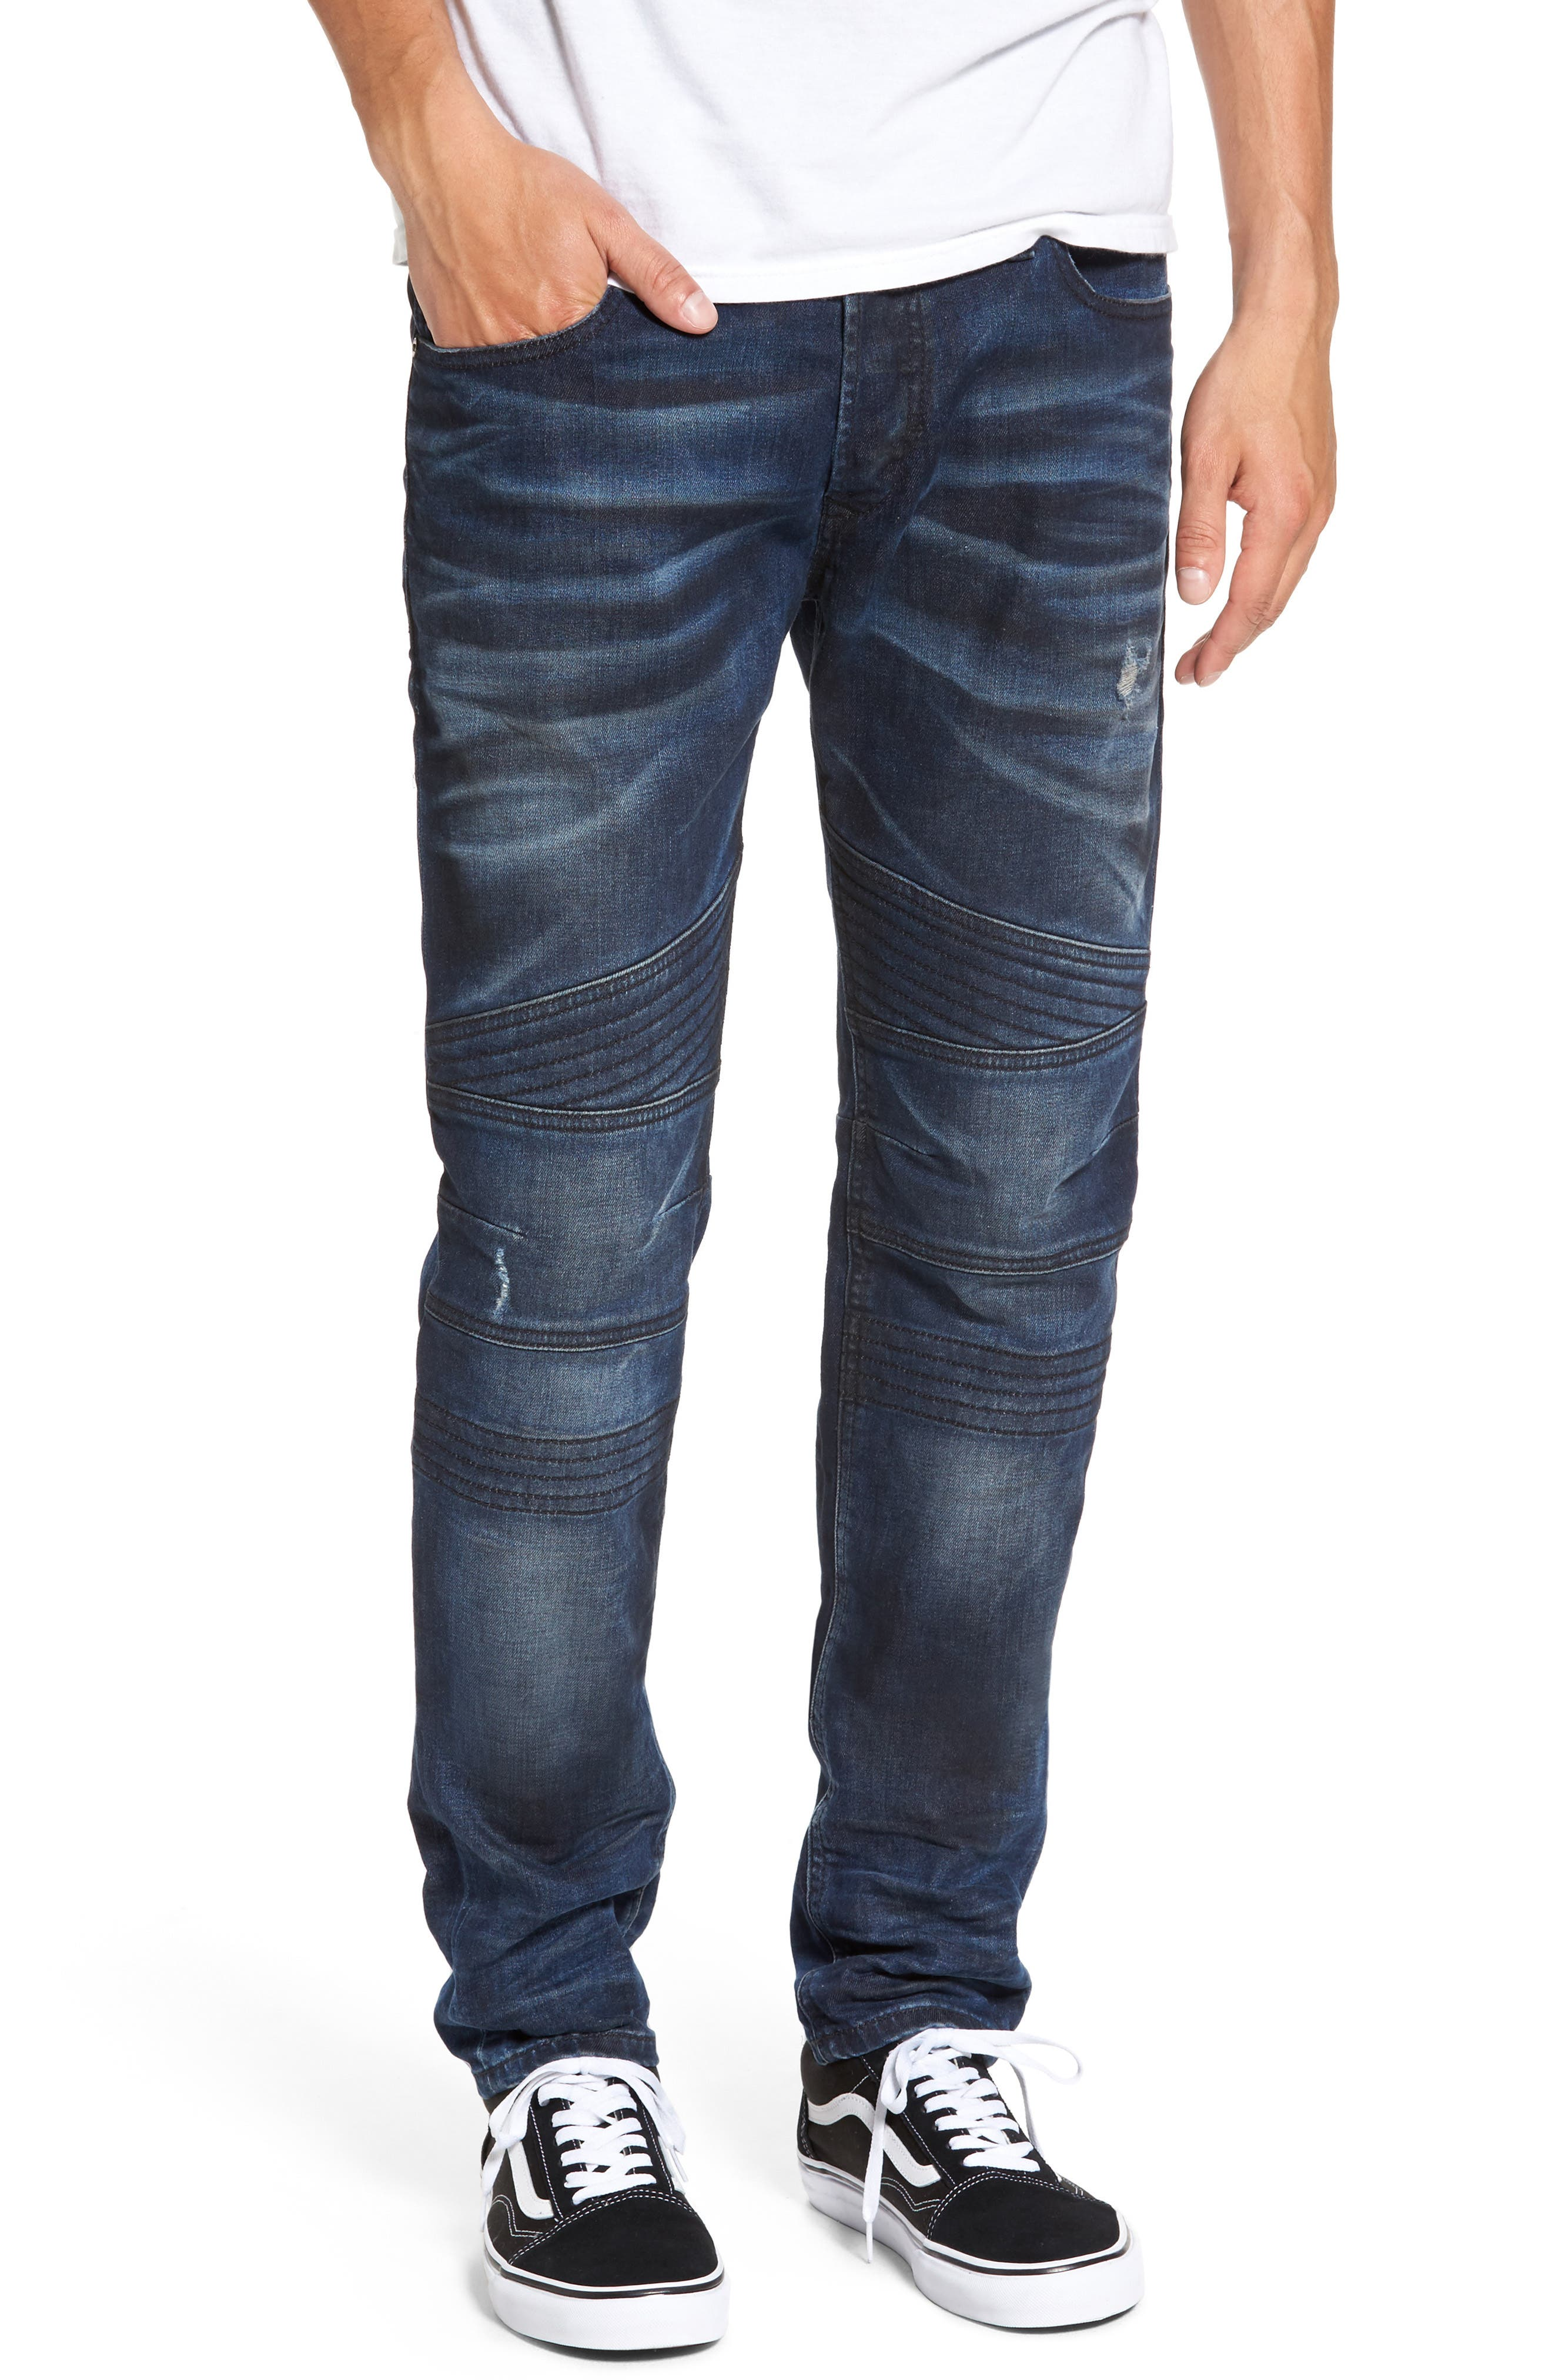 Fourk Skinny Fit Jeans,                             Main thumbnail 1, color,                             400